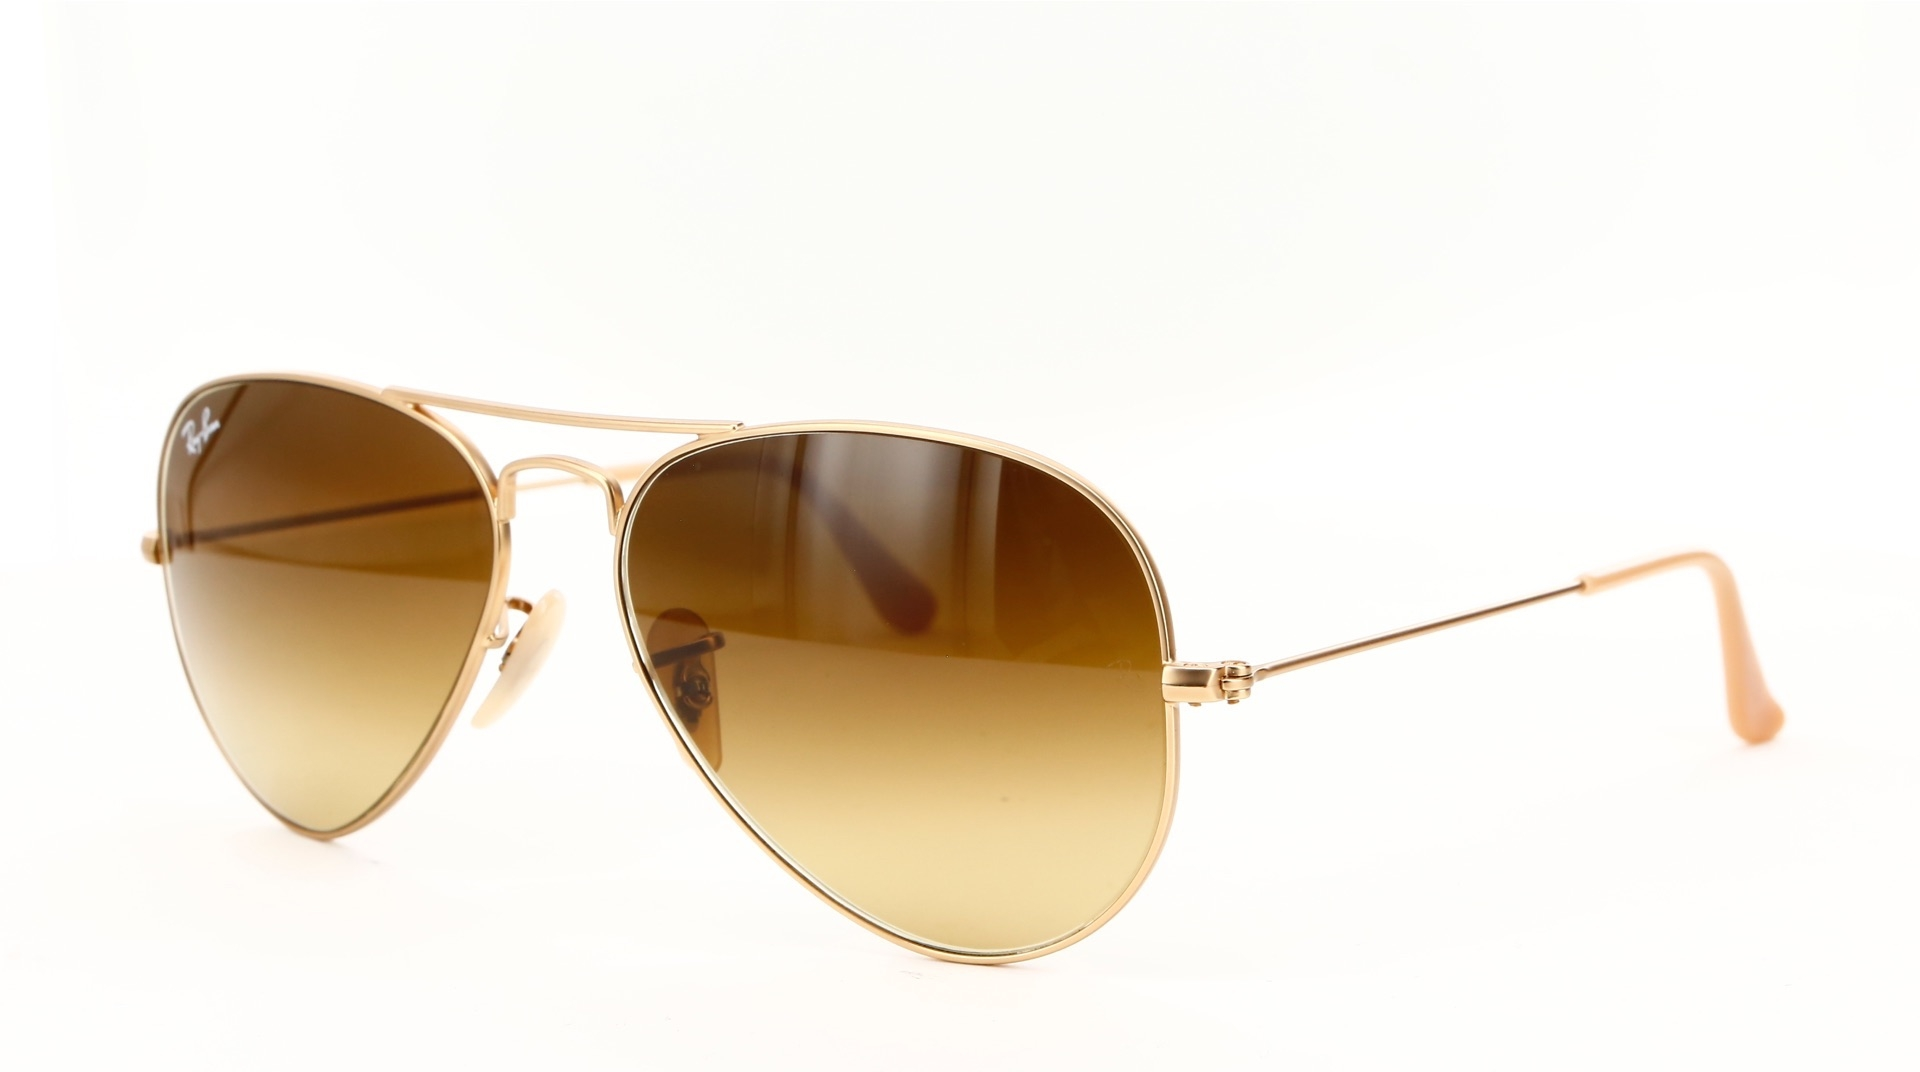 Ray-Ban - ref: 68370